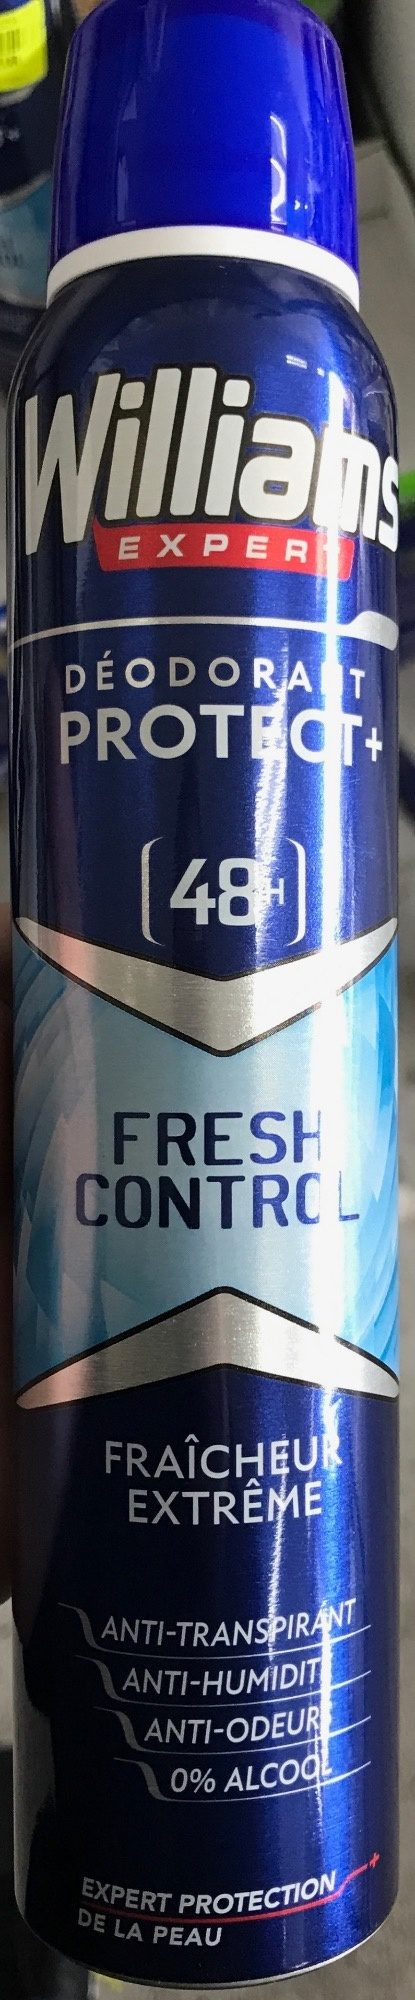 Déodorant Protect+ 48H Fresh Control - Product